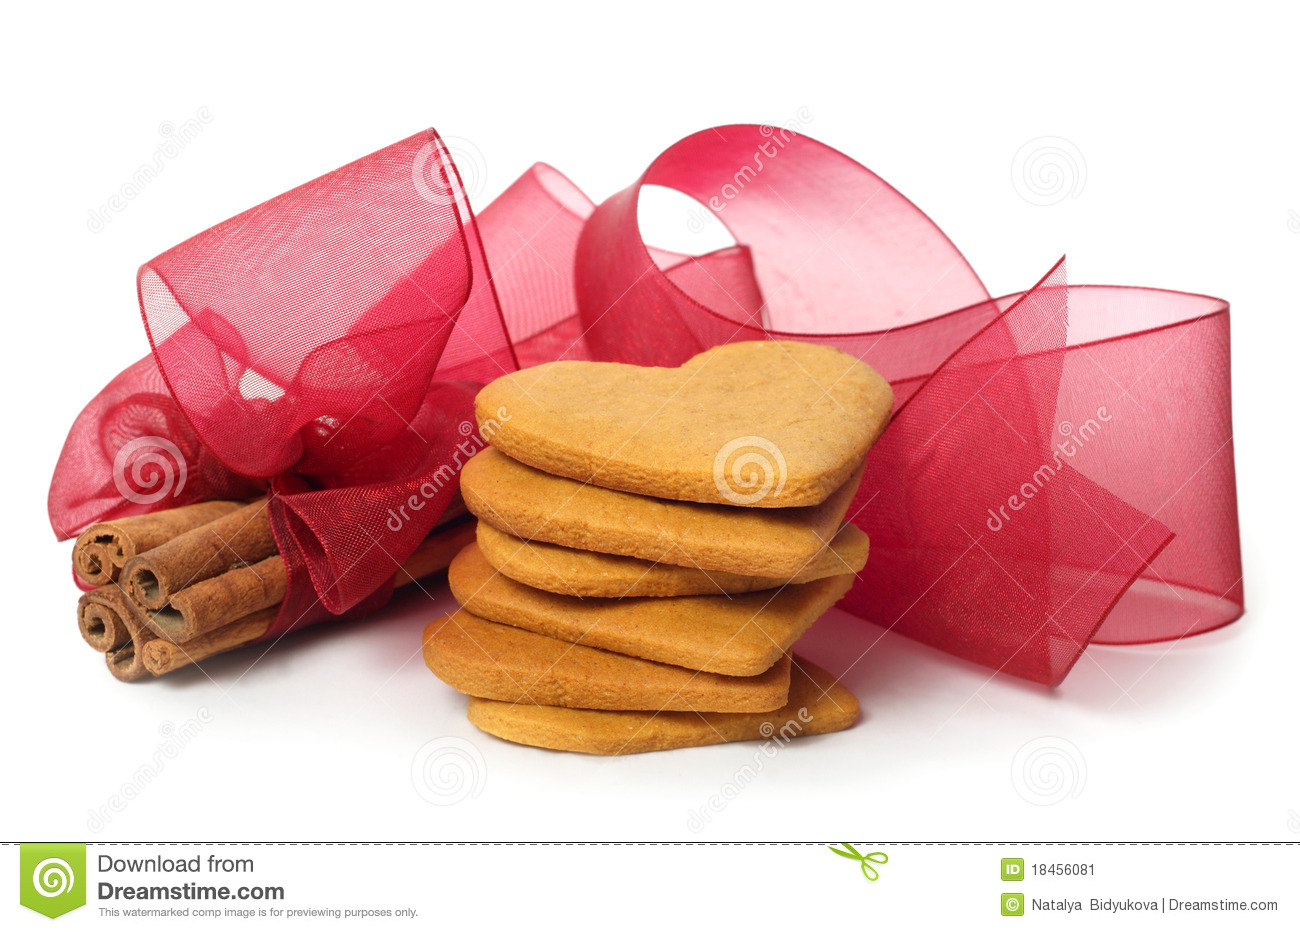 Ginger Snap And Cinnamon Stock Image - Image: 18456081